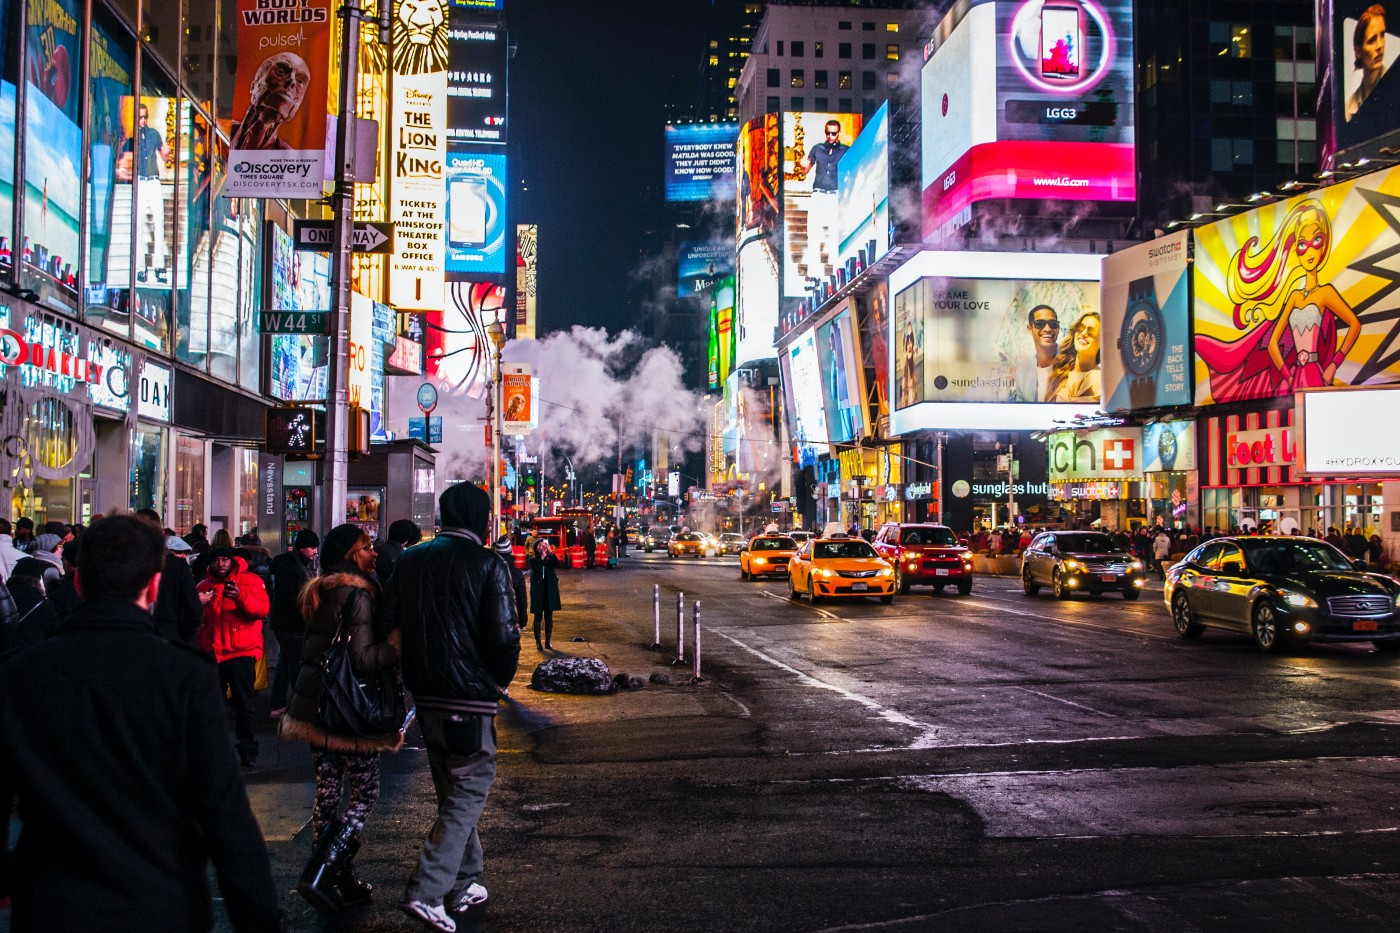 """""""Times Square never shined so bright"""" by Nicolai Berntsen on Unsplash"""